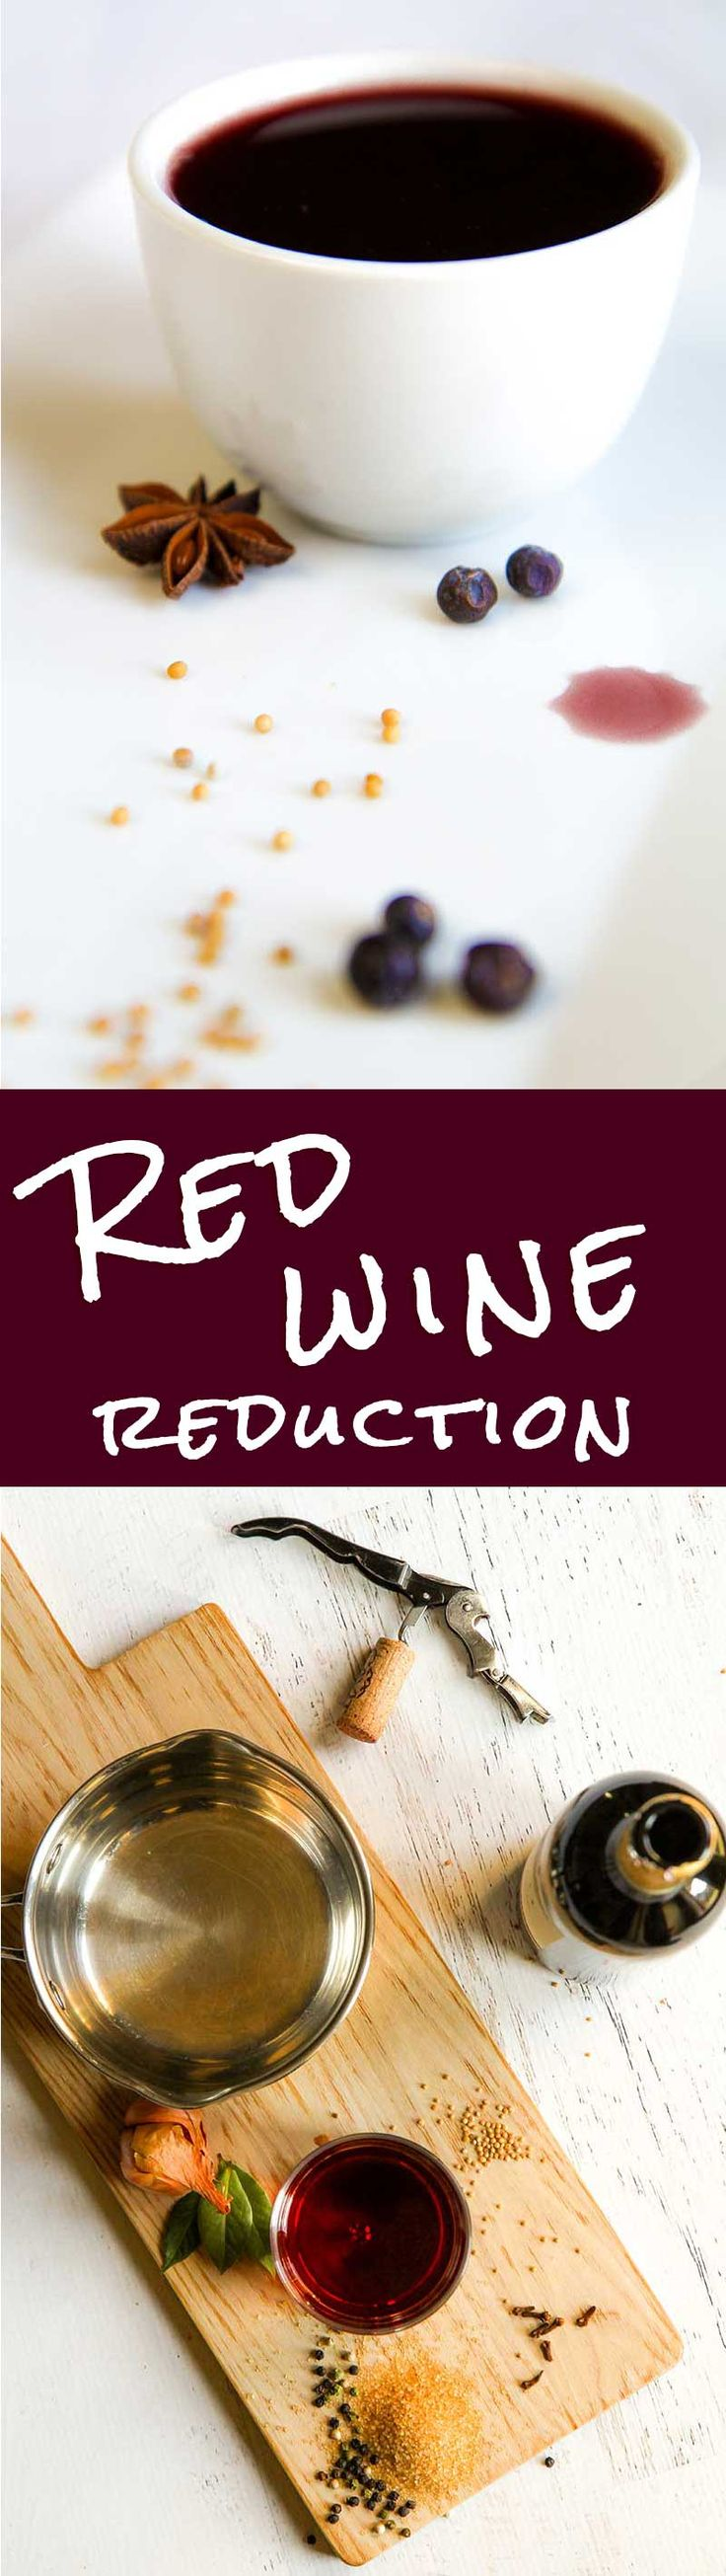 RED WINE REDUCTION RECIPE - This red wine reduction is a simple basic recipe for many dish: stews, braised vegetables, even ice cream! Here I propose my personal recipe, just a base for your own creations! - sauce stew cipollini braised vegetarian vegan gluten free